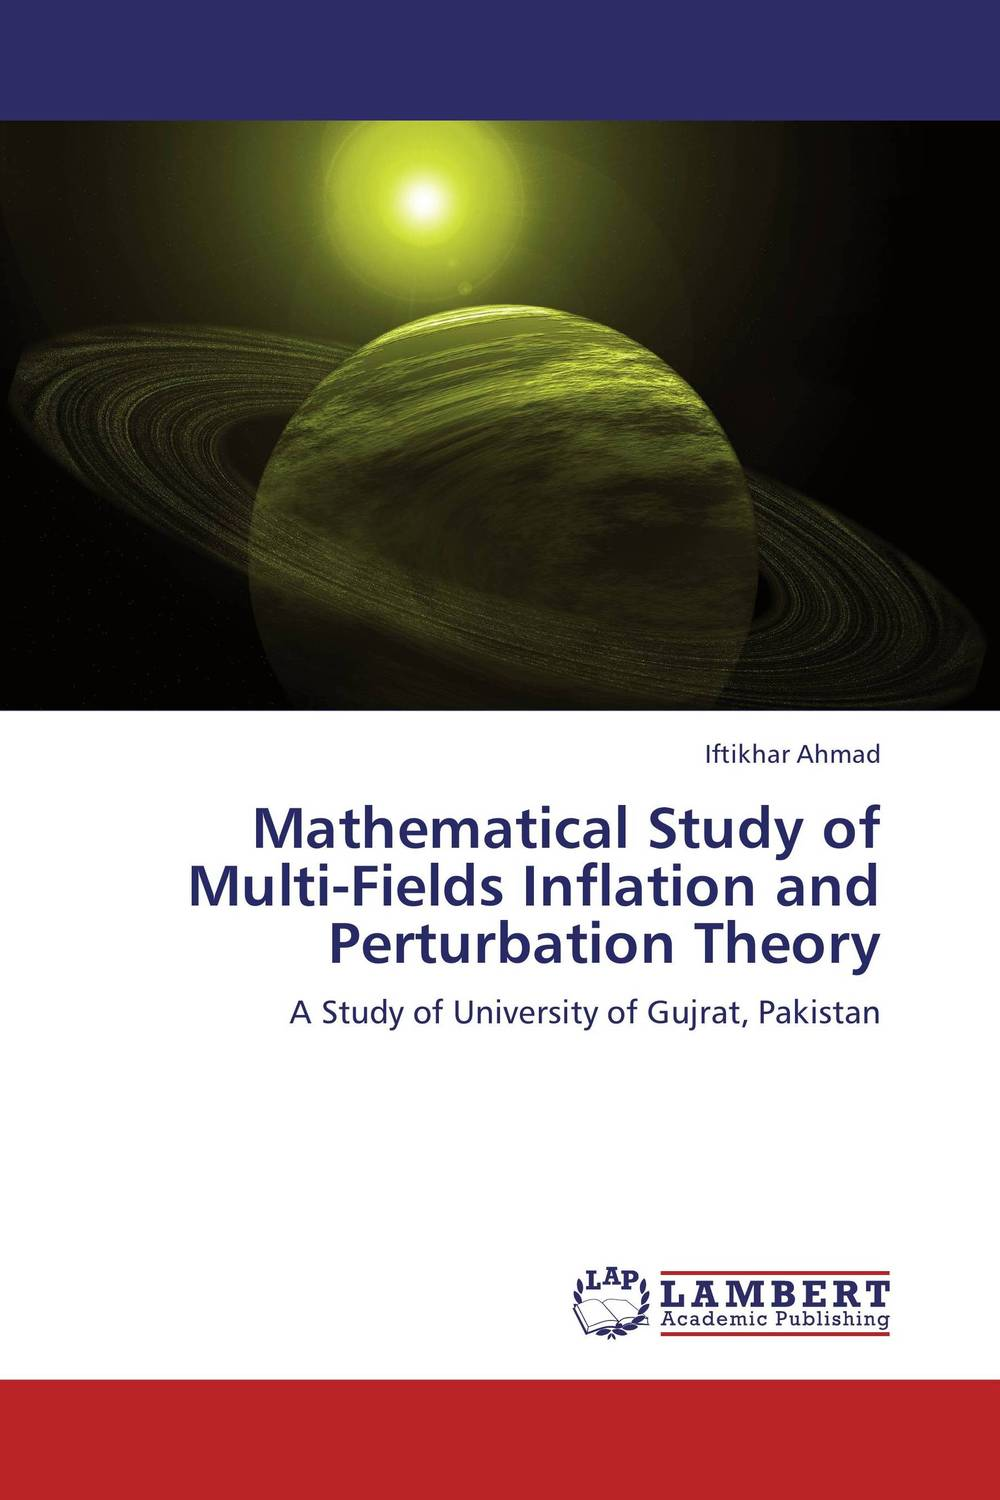 Mathematical Study of Multi-Fields Inflation and Perturbation Theory